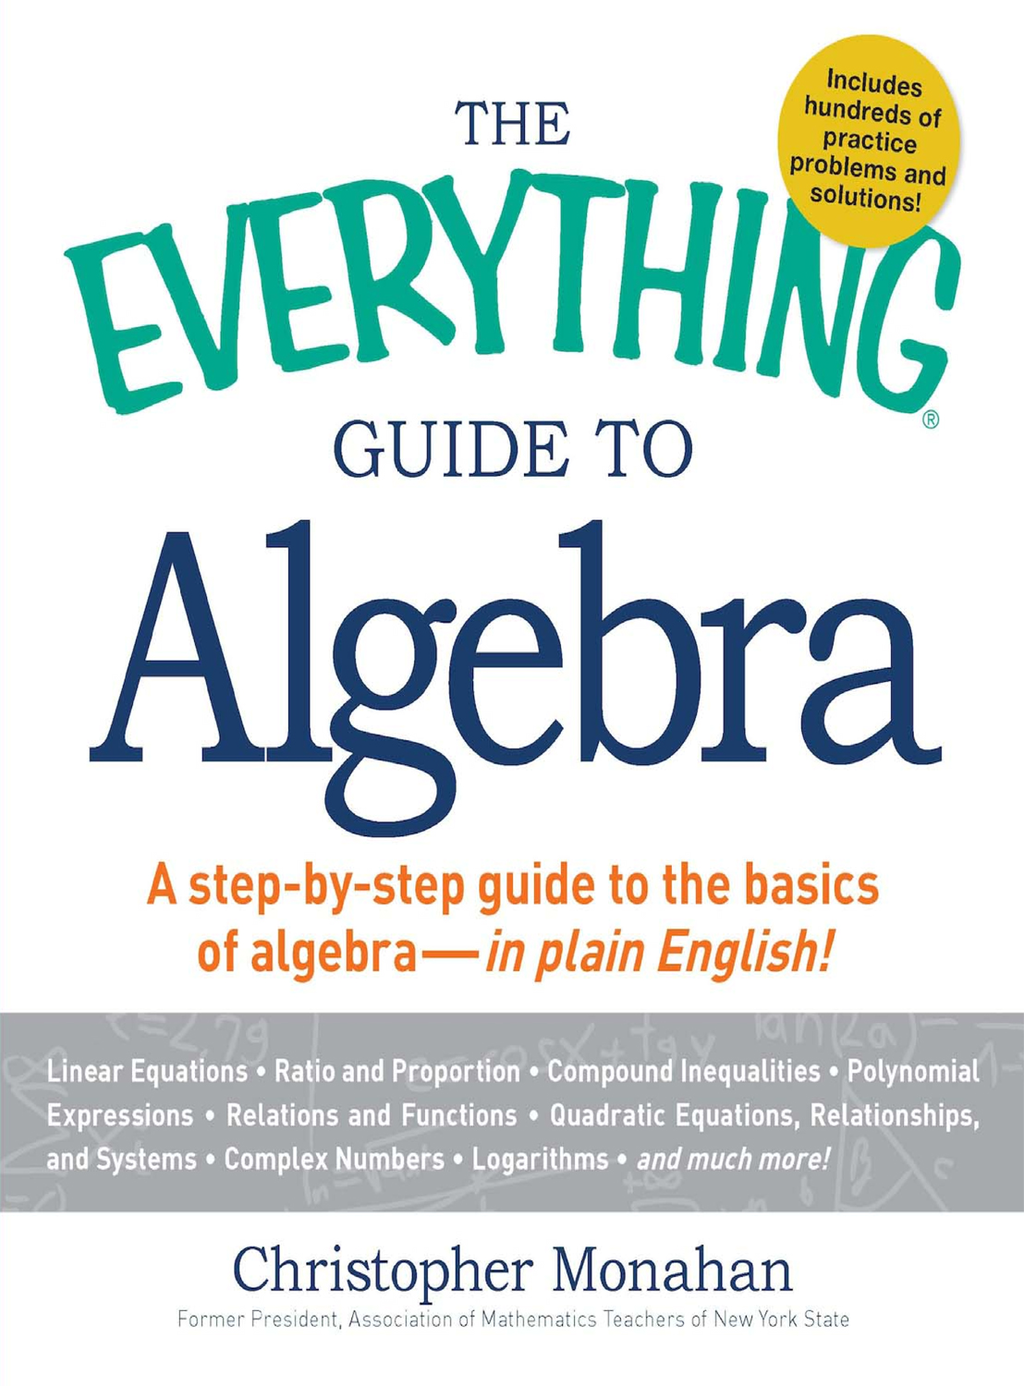 The Everything Guide to Algebra: A Step-by-Step Guide to the Basics of Algebra - in Plain English! By: Christopher Monahan